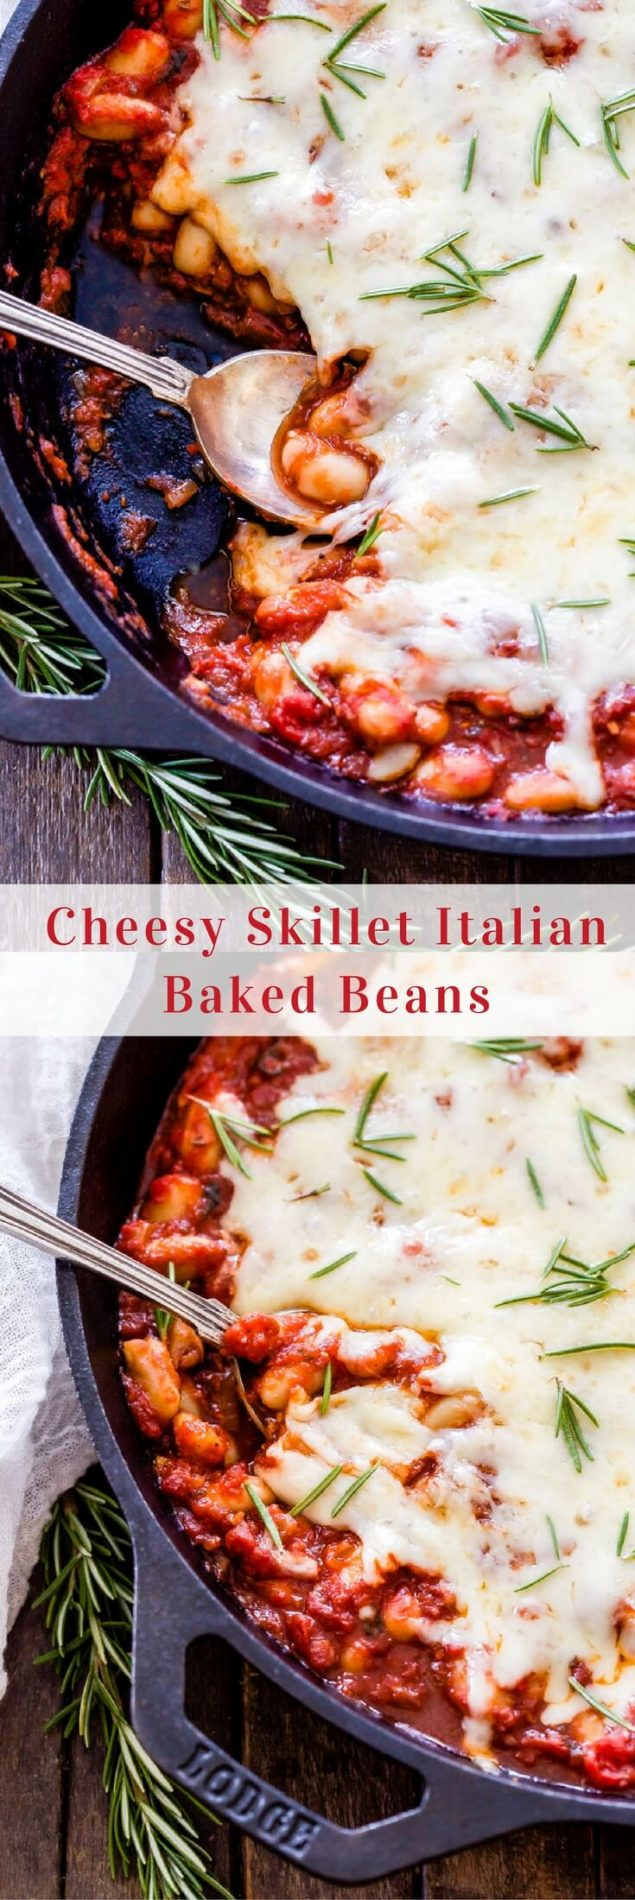 Classic baked beans get a delicious Italian twist! Cheesy Italian Baked Beans is a hearty and comforting vegetarian meal that's easy and affordable to make. #bakedbeans #cheese #italian #easyrecipe #vegetarian #glutenfree